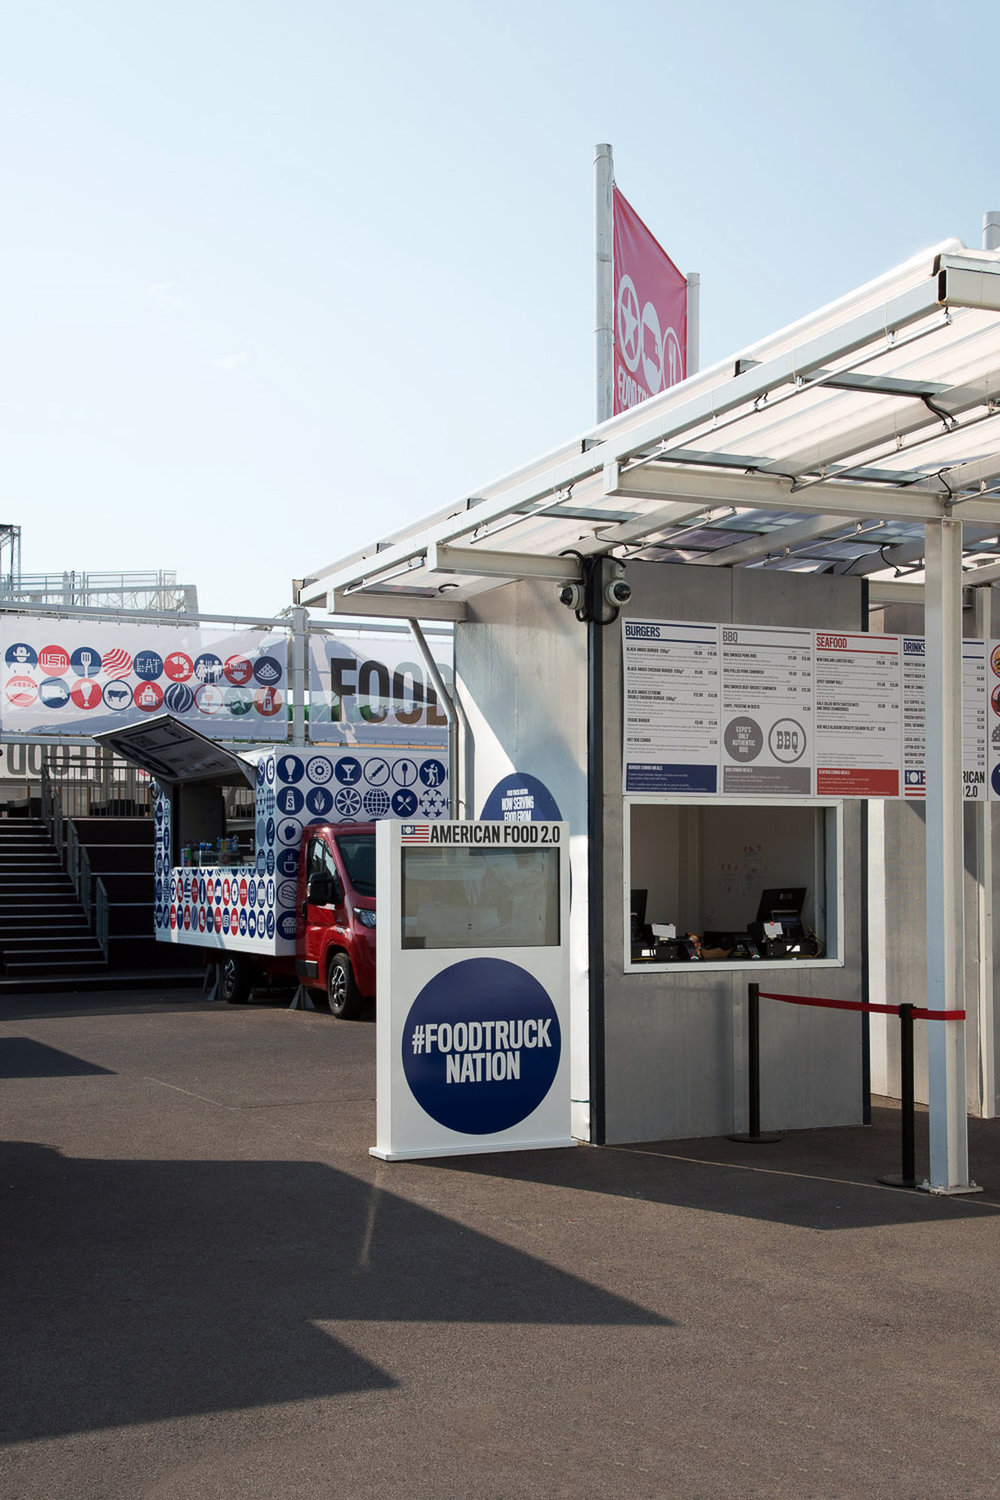 USA Pavilion EXPO Milano 2015 food trucks 3.jpg